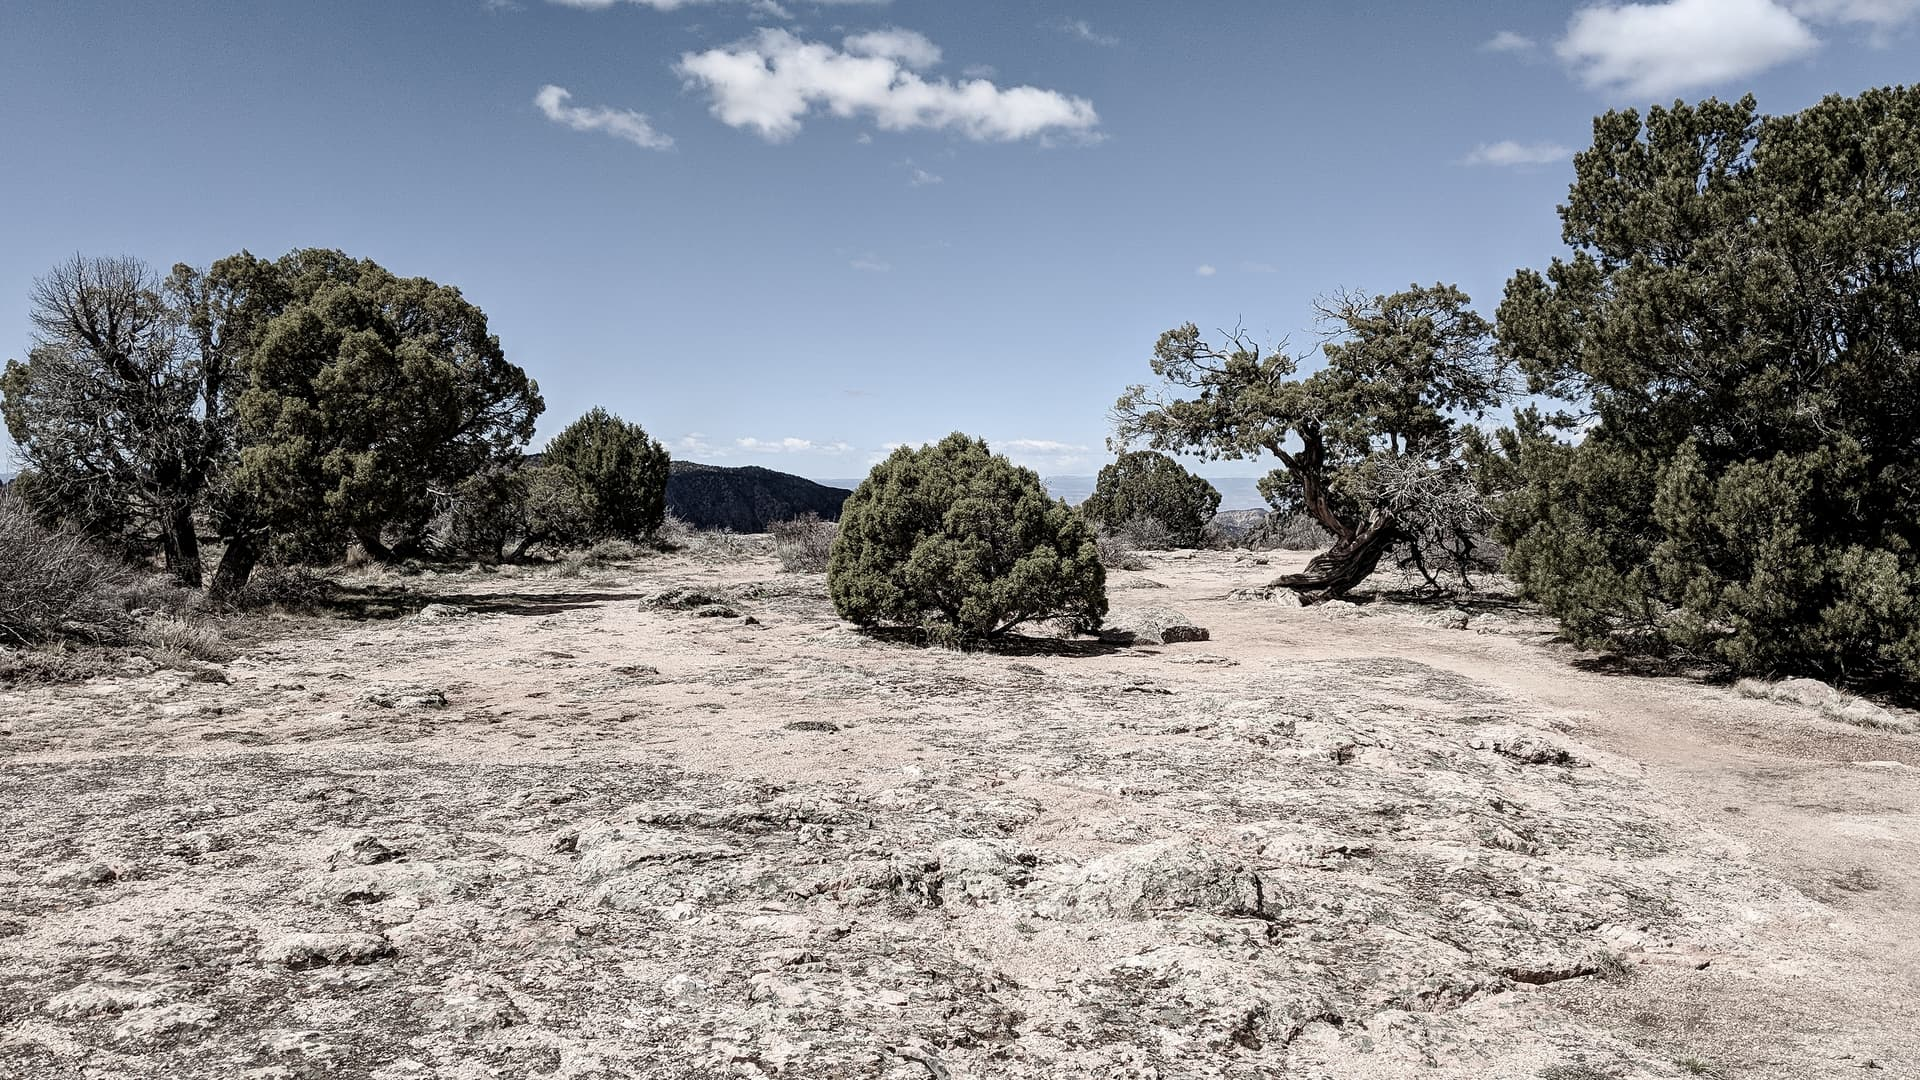 A short, globe-like juniper tree stands alone in the middle of a rocky clearing.